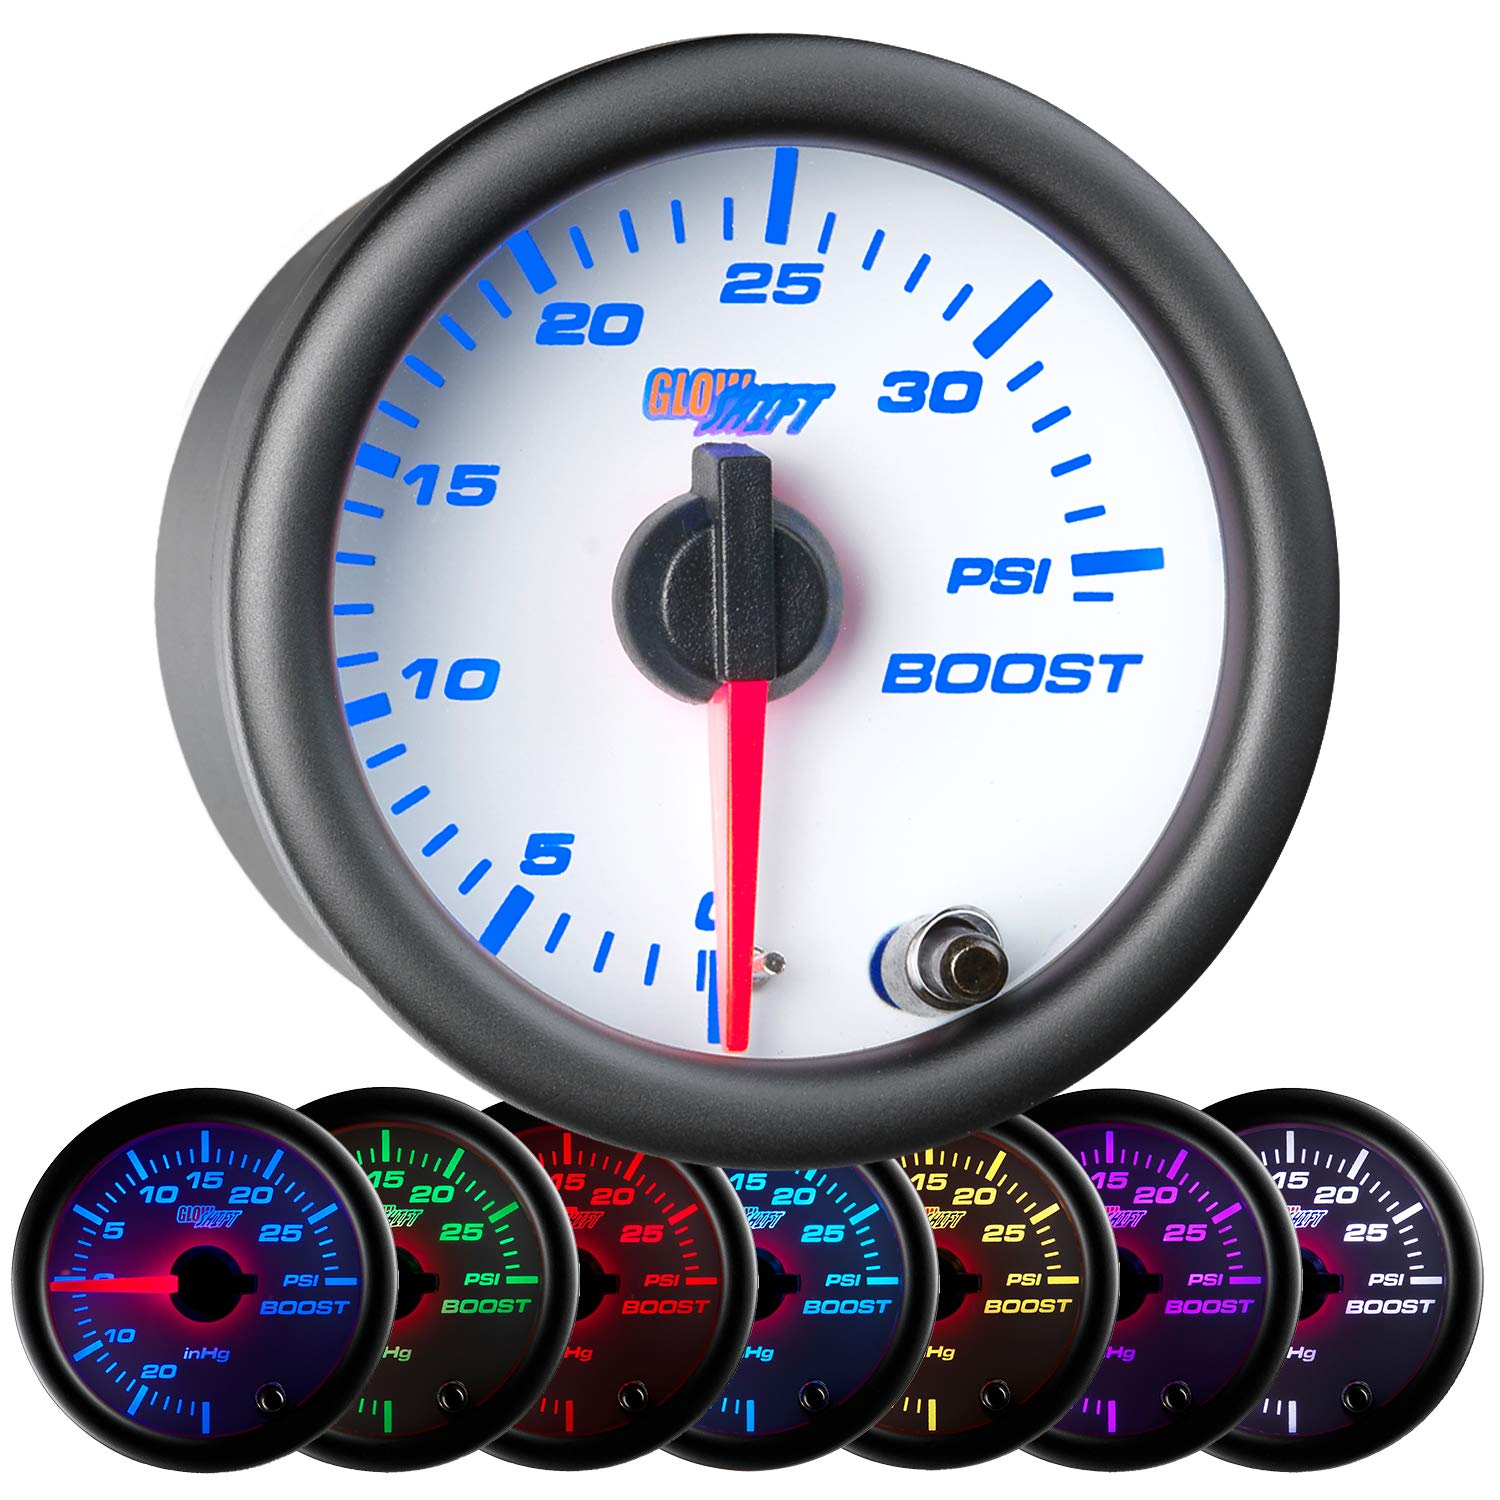 GlowShift White 7 Color 35 PSI Turbo Boost Gauge Kit - Includes Mechanical Hose & Fittings - White Dial - Clear Lens - For Car & Truck - 2-1/16'' 52mm